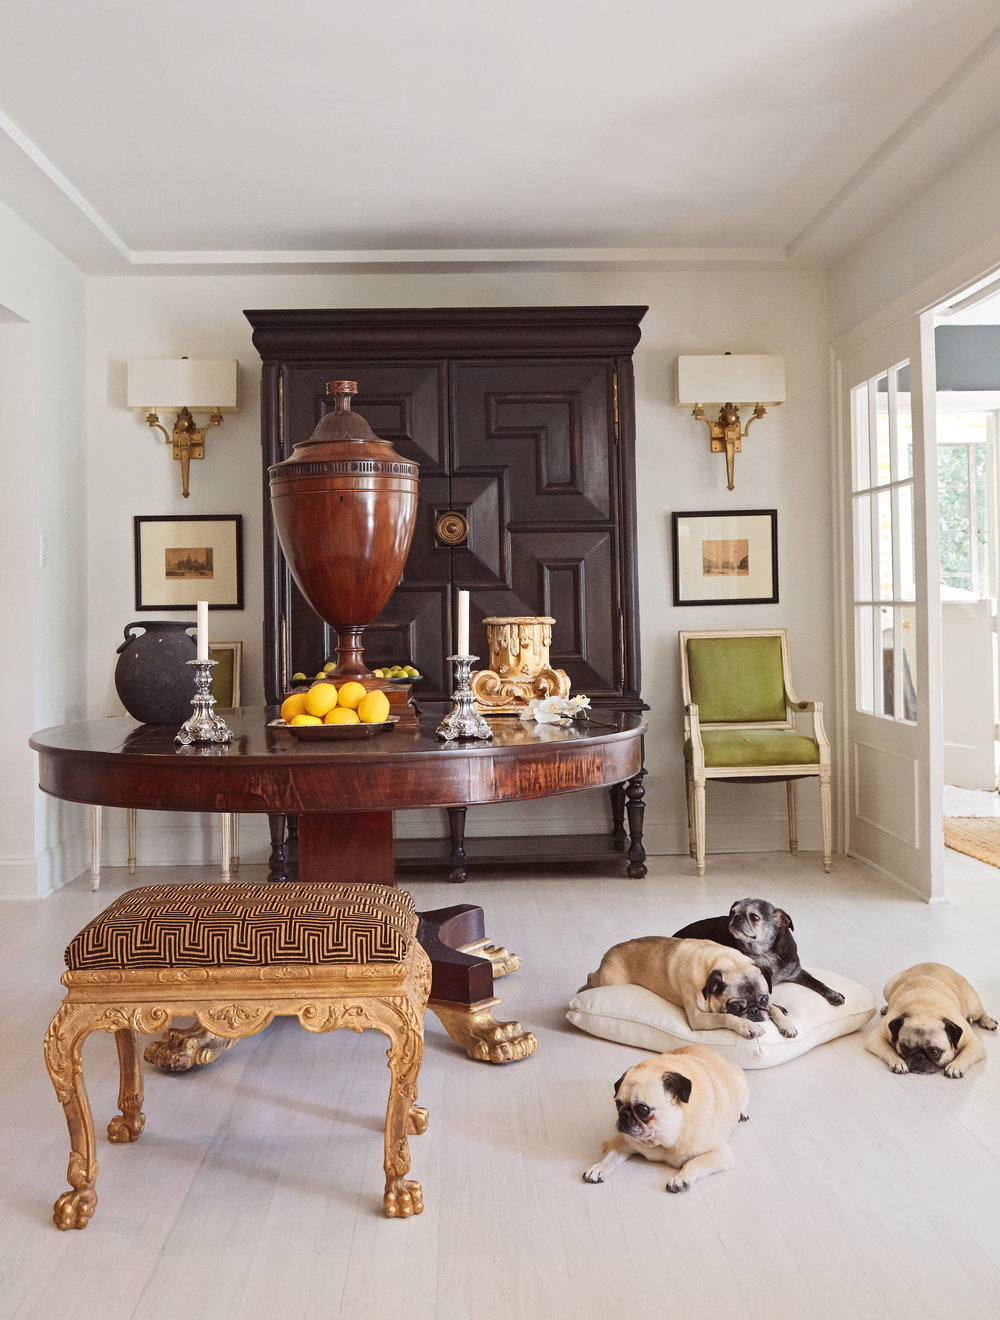 © At Home with Dogs and Their Designers by Susanna Salk, Rizzoli New York, 2017.  All  photography by Stacey Bewkes, unless otherwise  specified.